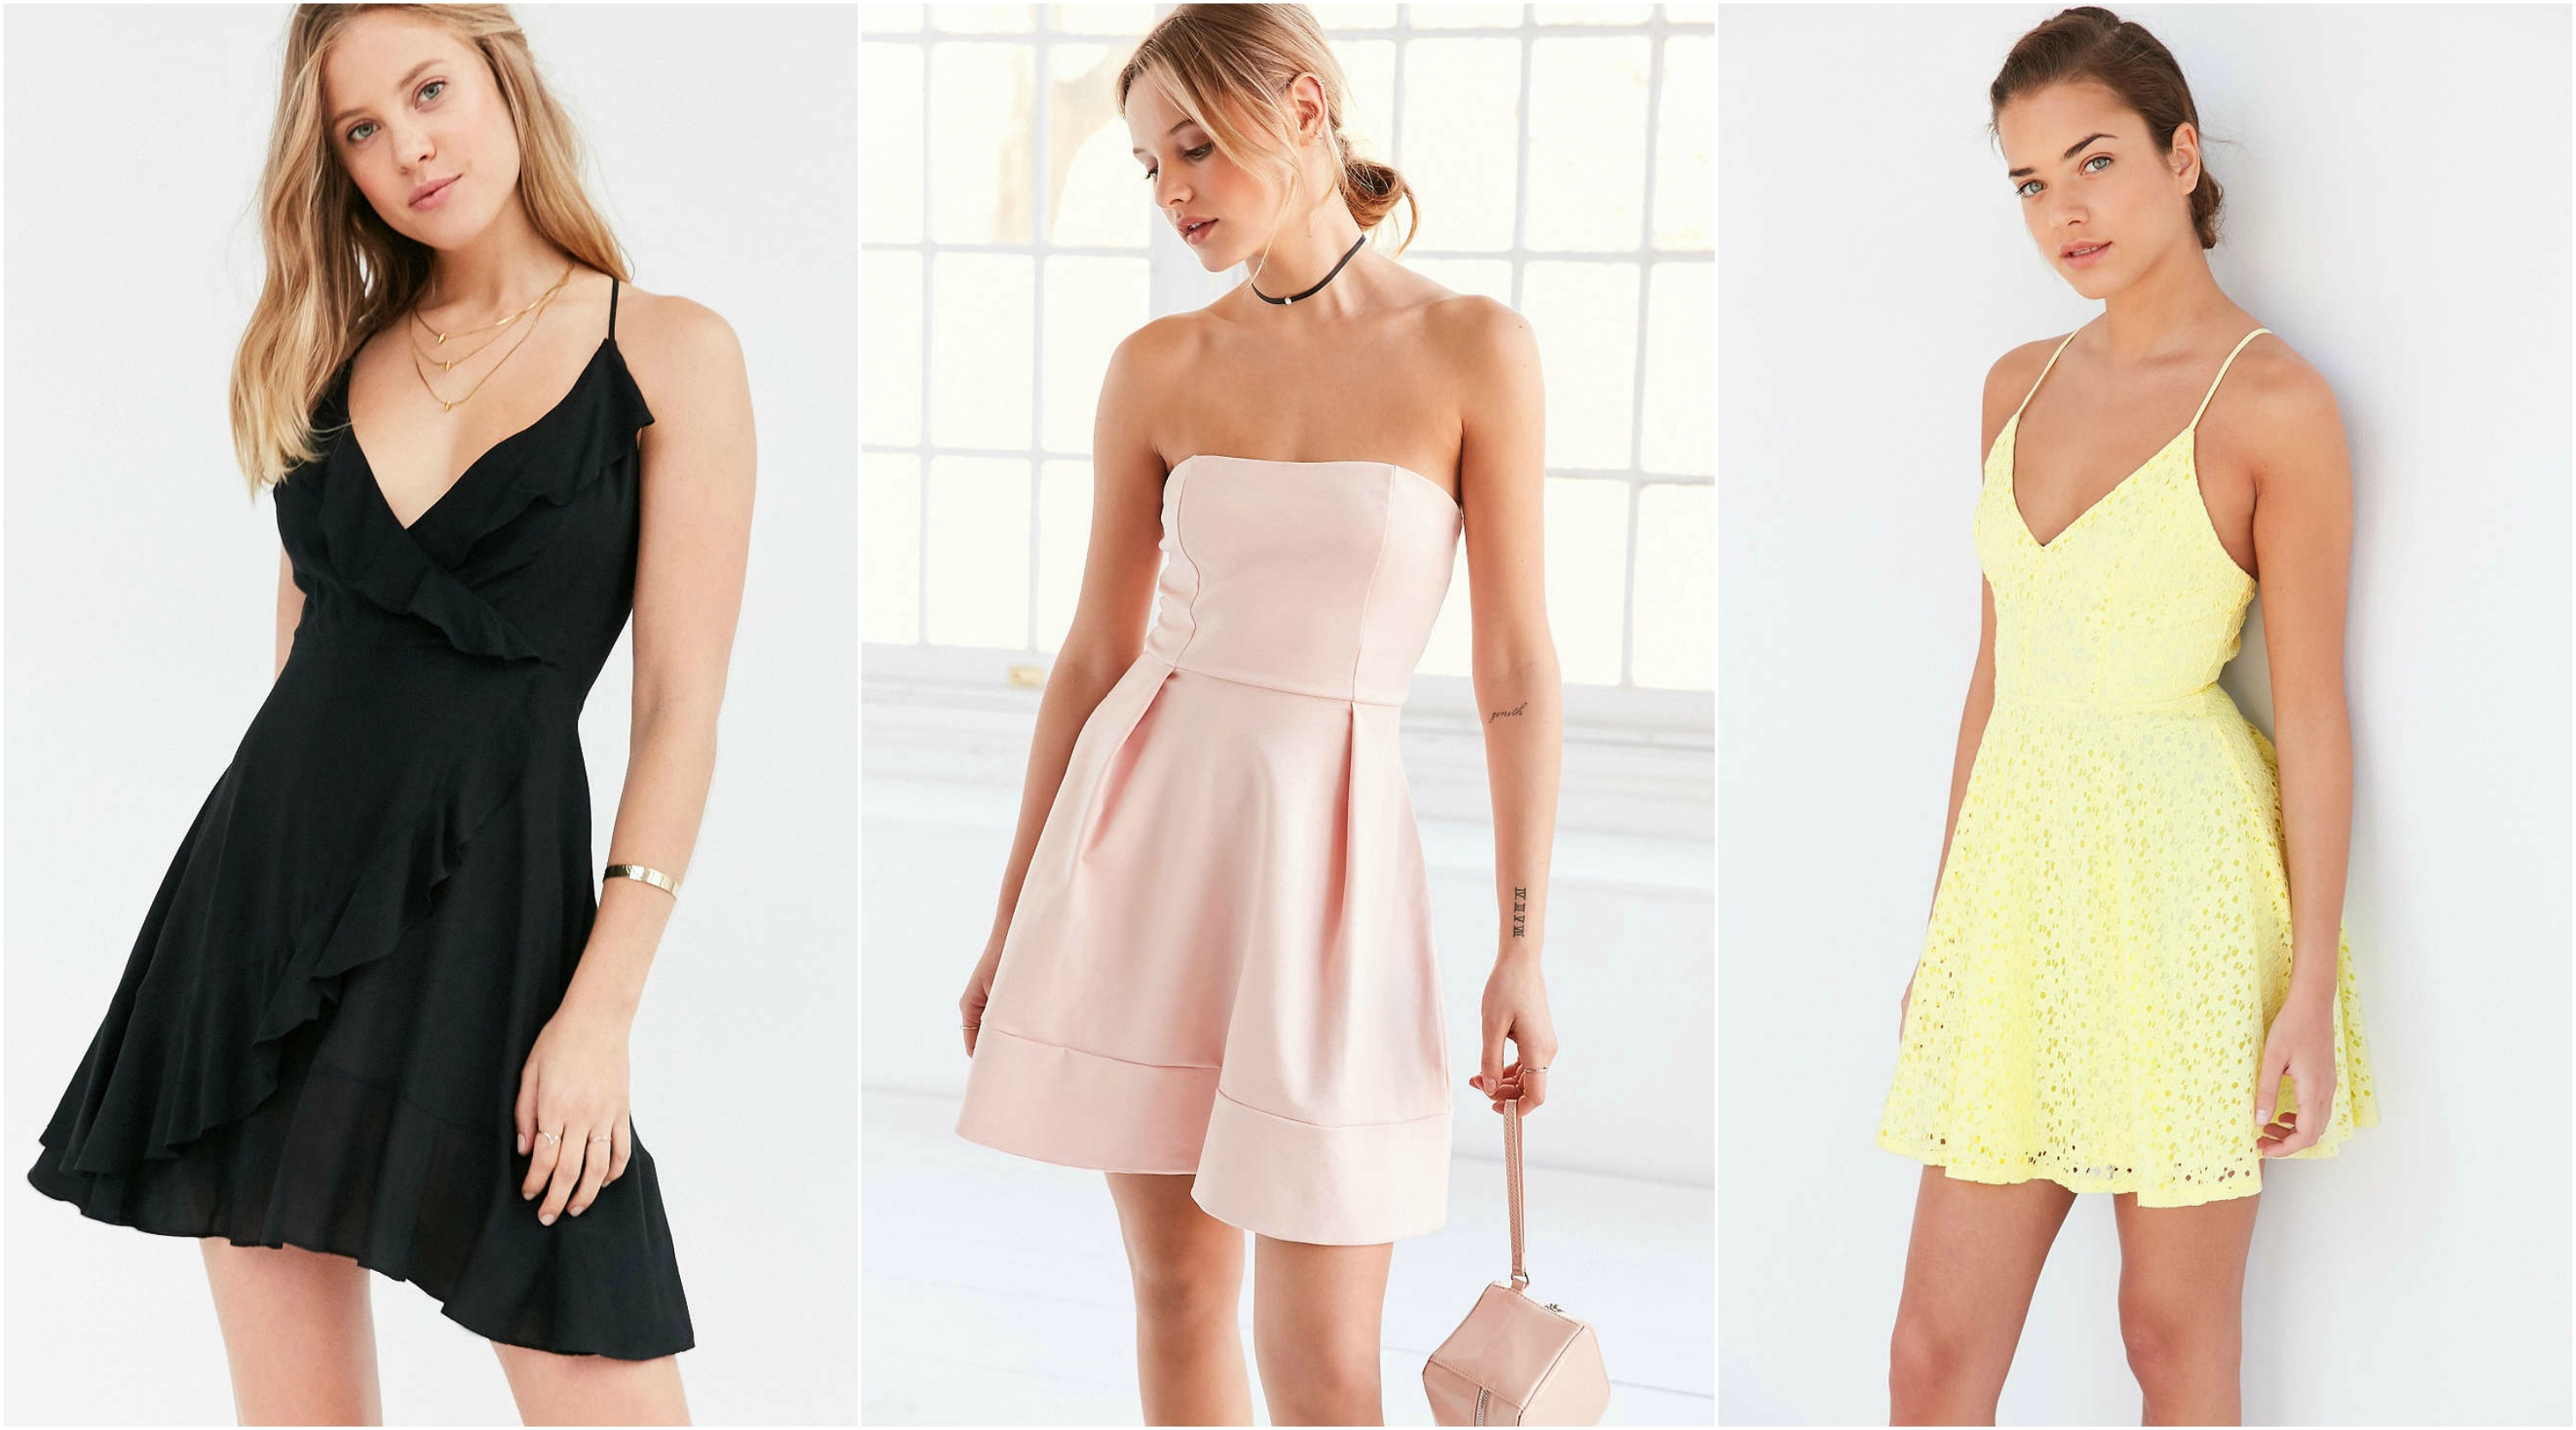 Best stores to buy graduation dresses